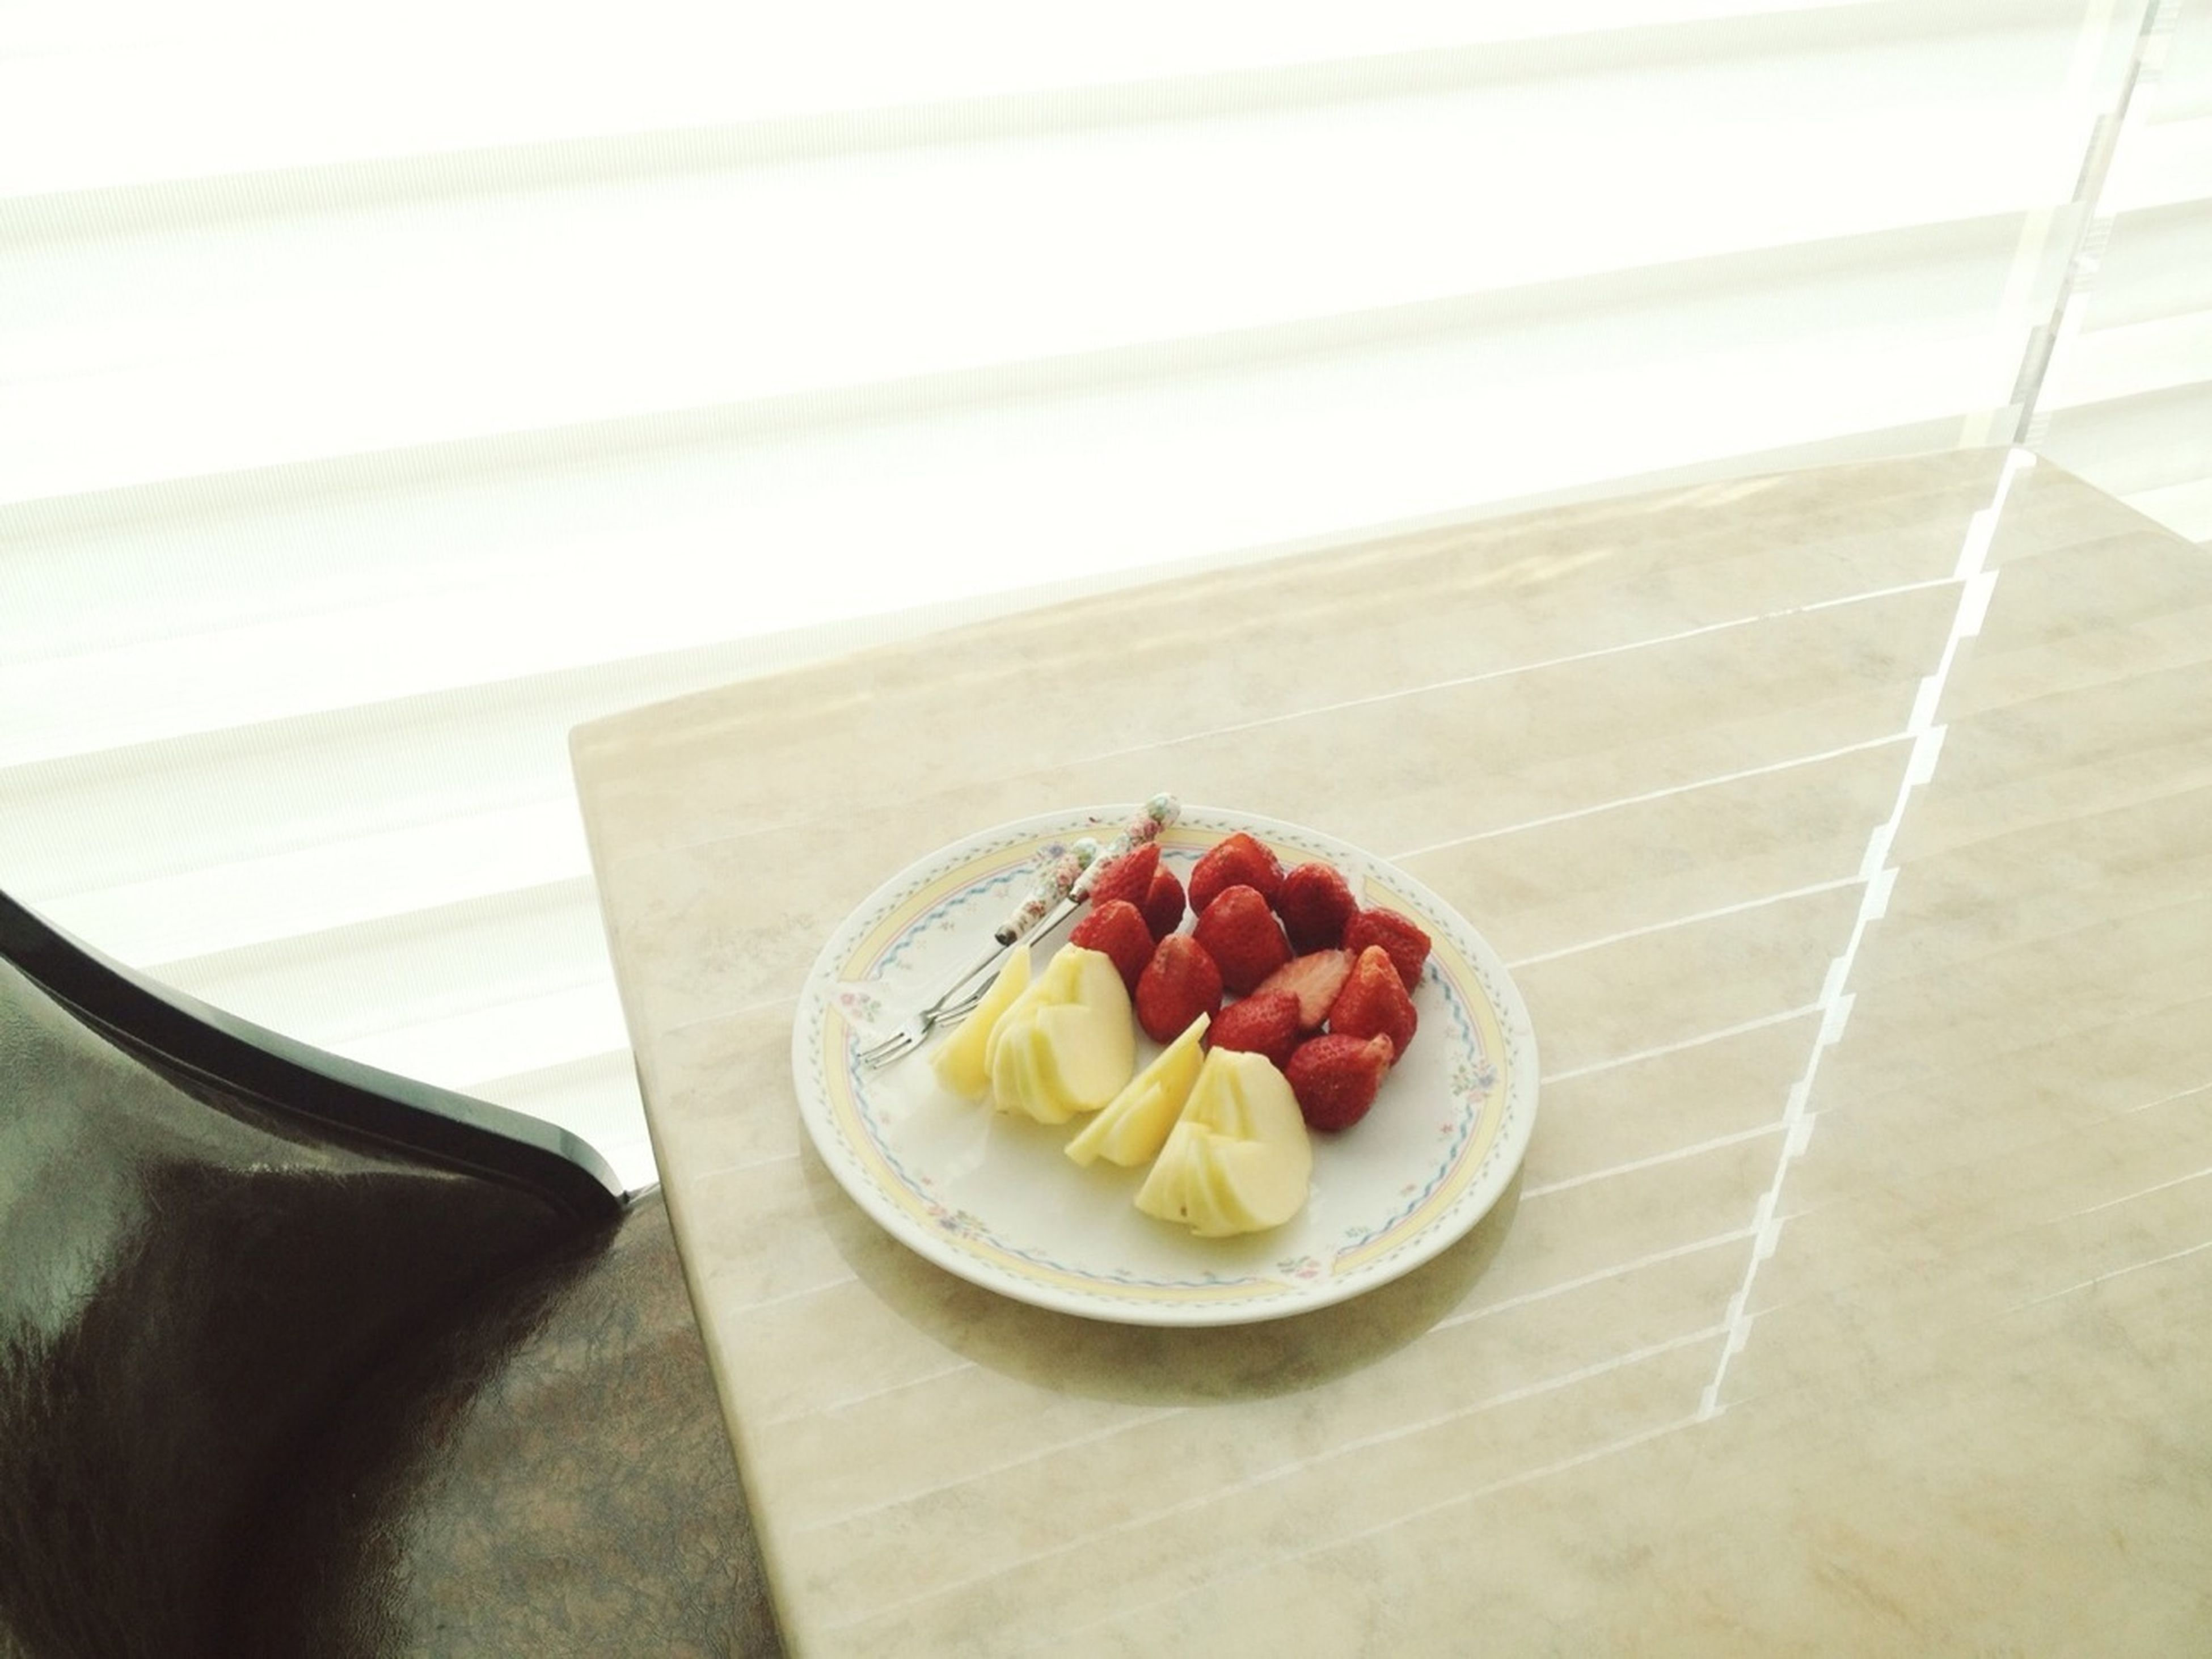 food and drink, food, freshness, ready-to-eat, indoors, plate, still life, table, indulgence, sweet food, dessert, healthy eating, strawberry, fruit, serving size, breakfast, temptation, close-up, slice